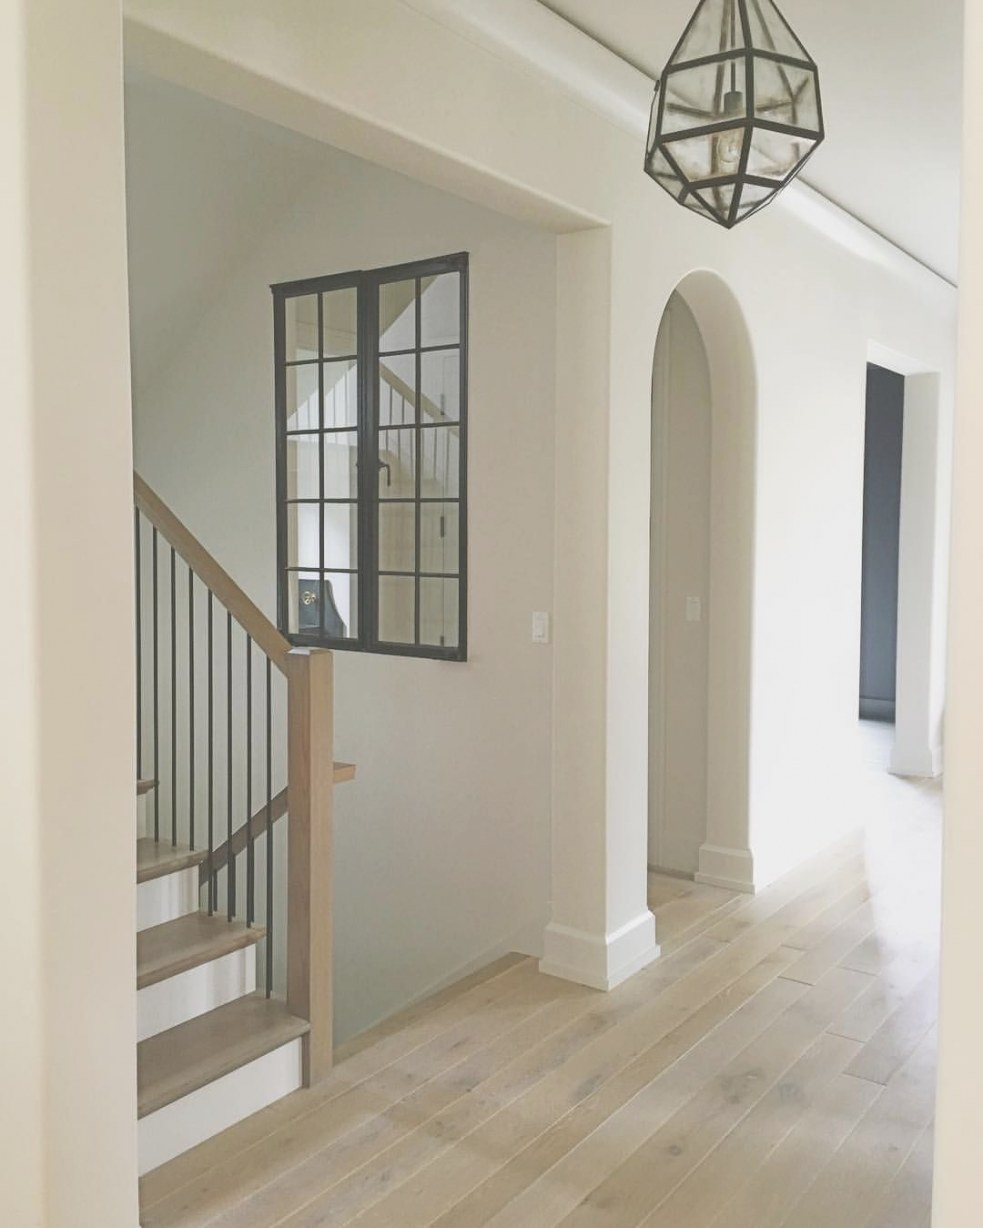 1,524 Likes, 52 Comments - Kate Marker Interiors pertaining to Benjamin Moore Classic Gray